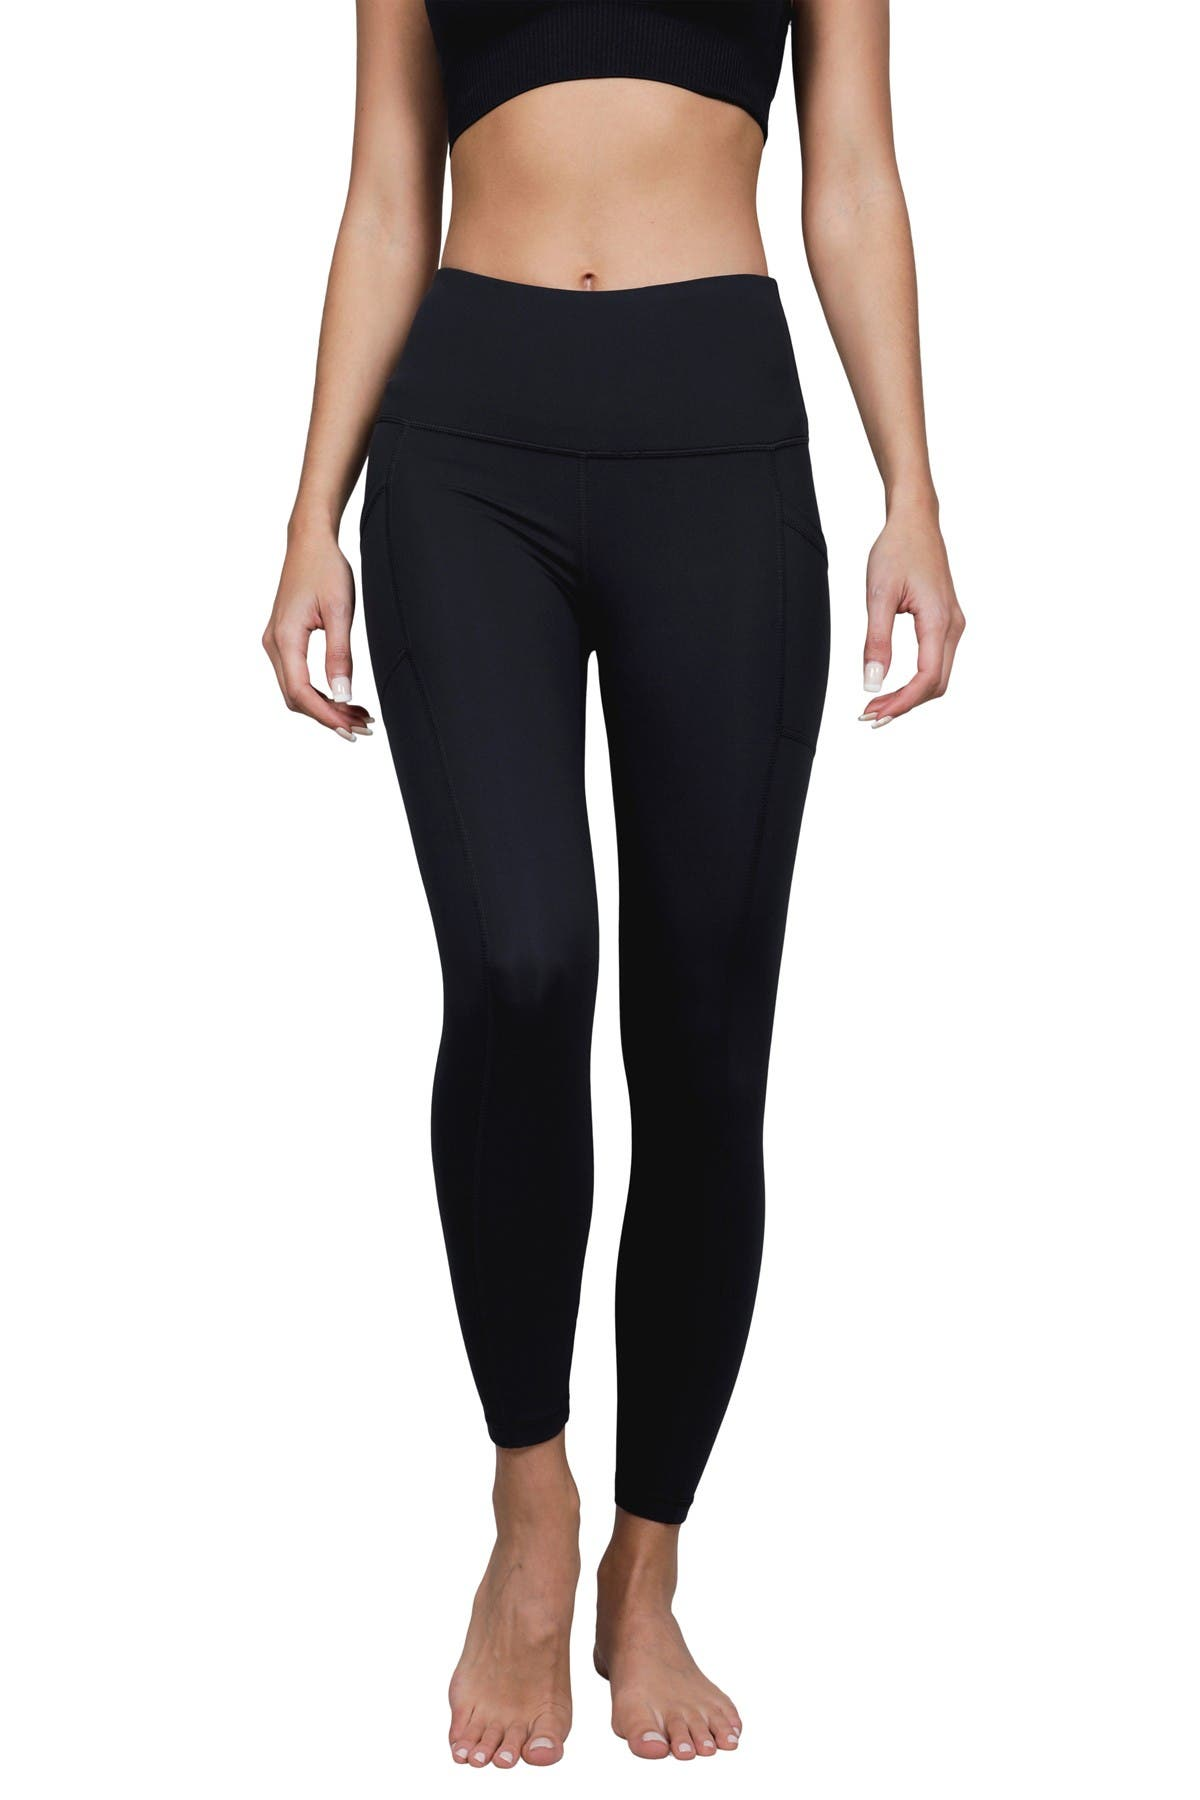 Image of 90 Degree By Reflex Lux High Rise Pocket Ankle Leggings